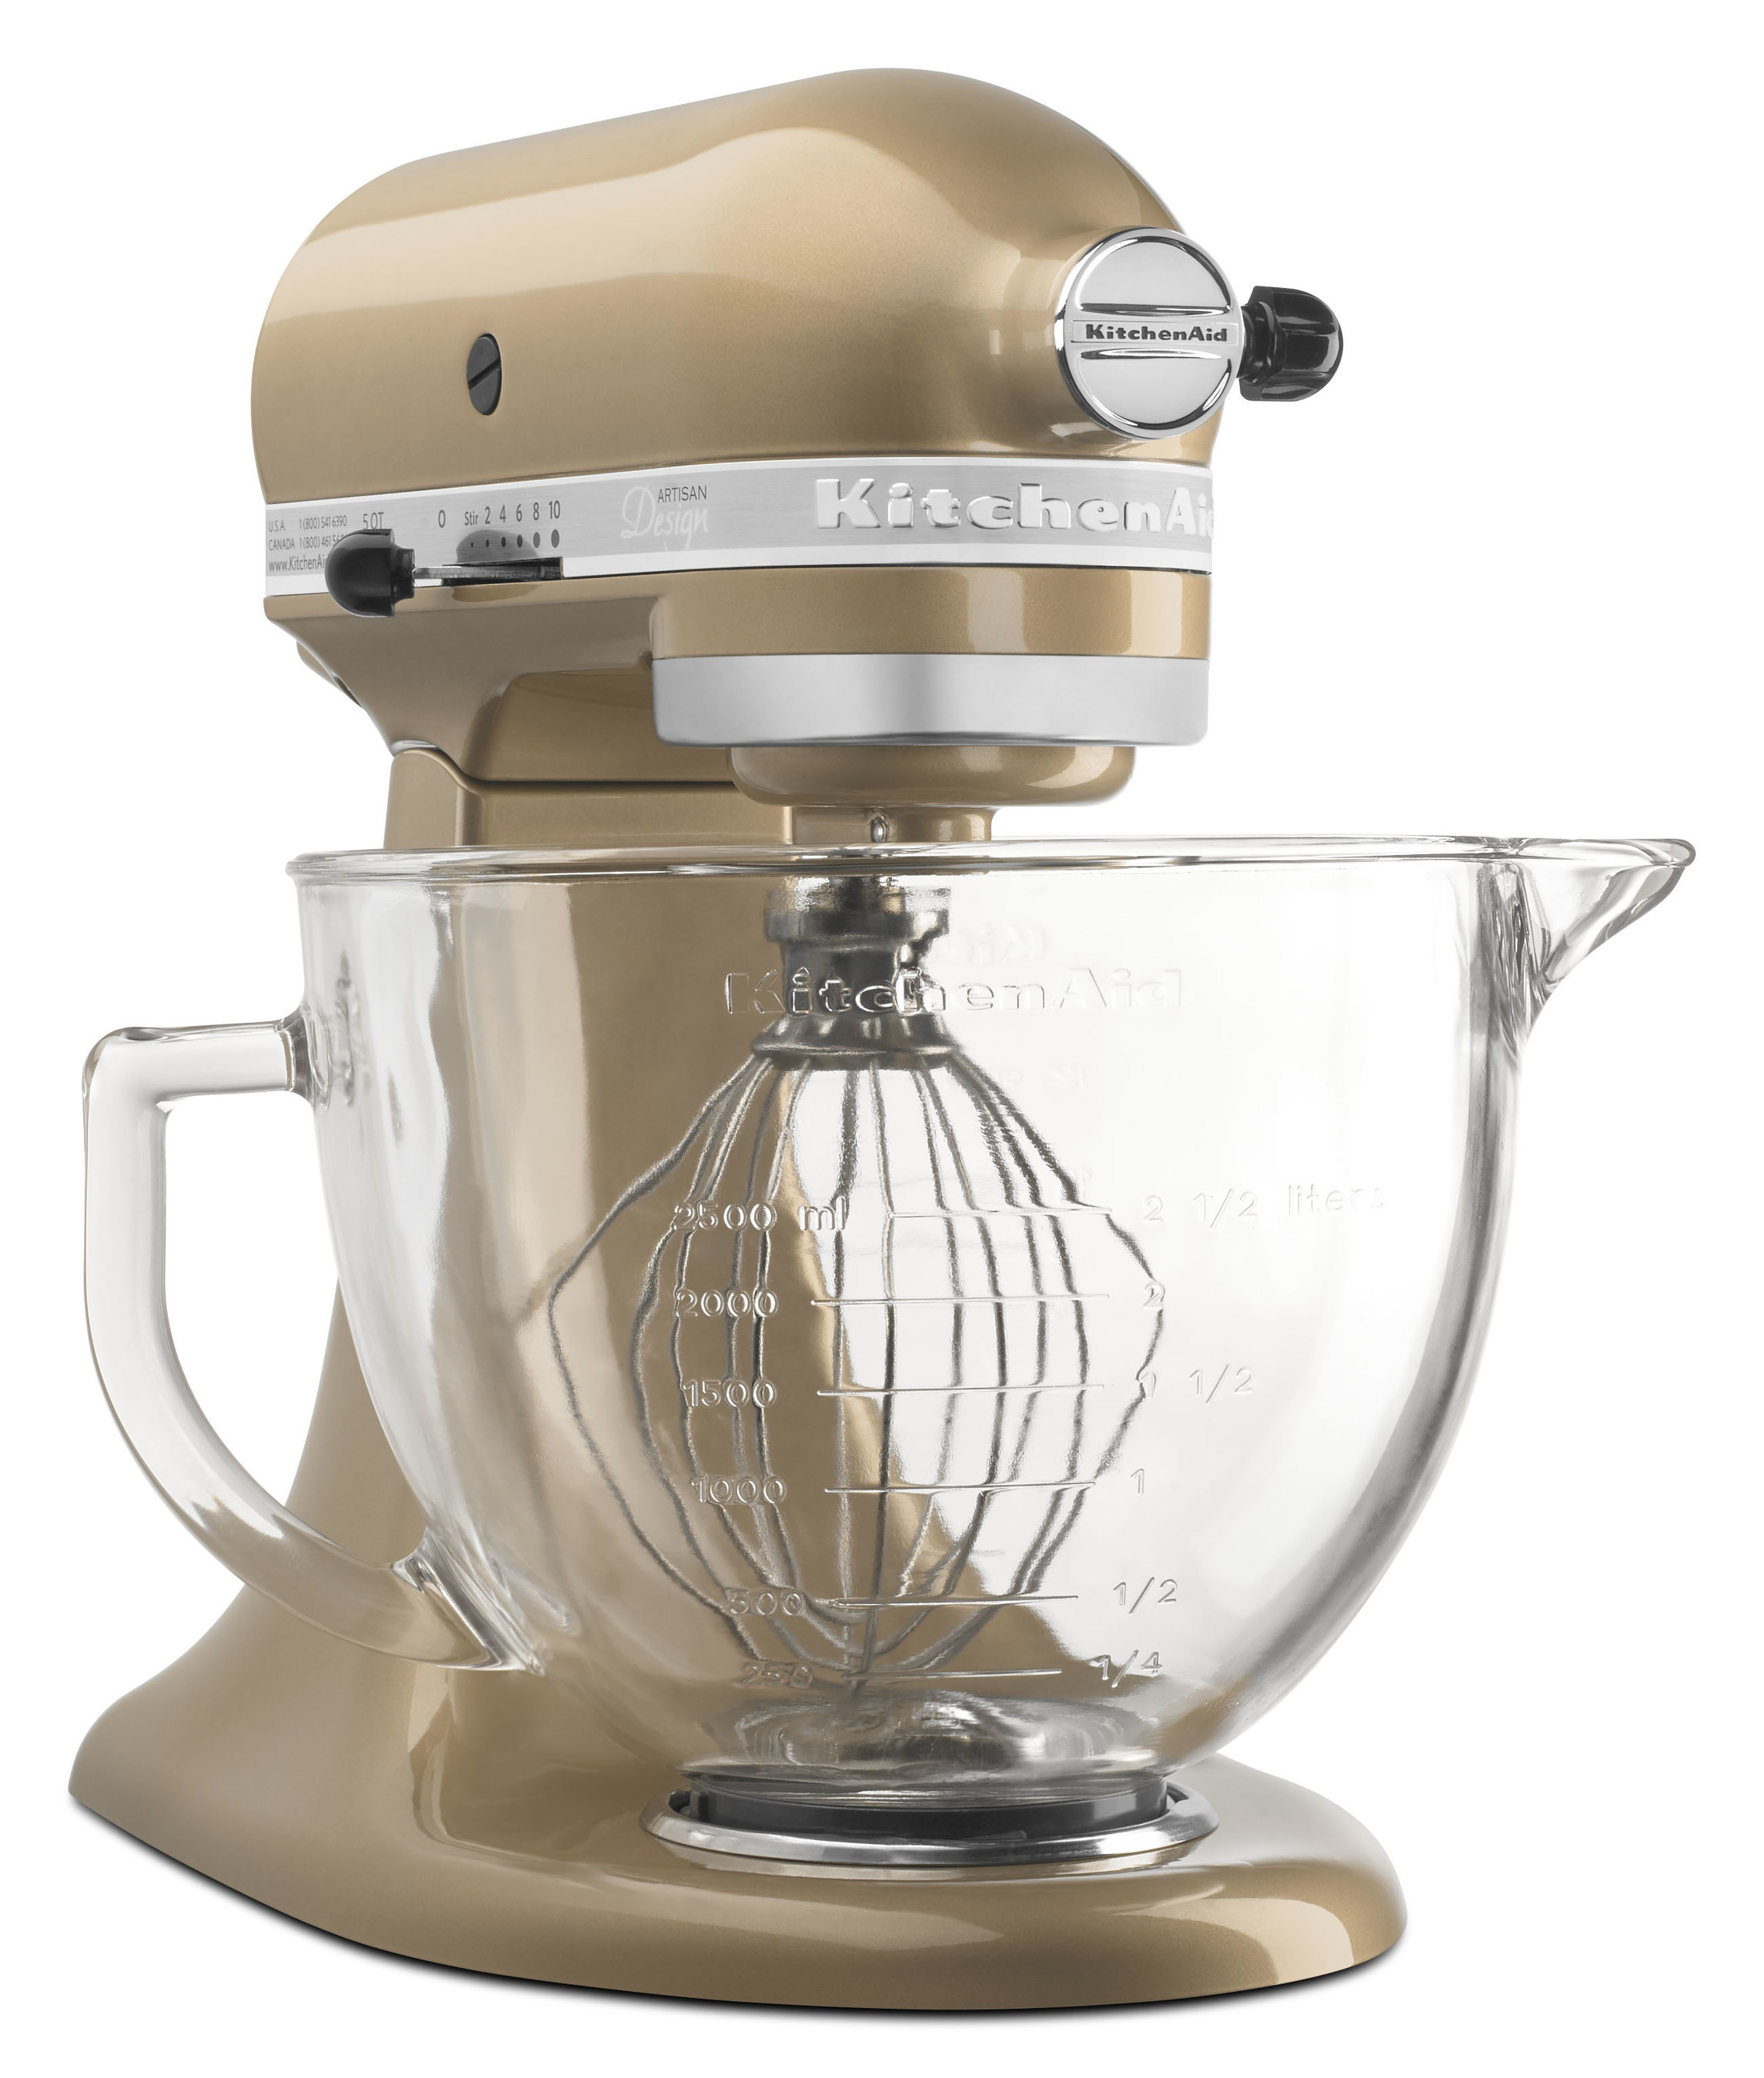 KitchenAid Artisan Design Series Stand Mixer in Champagne Gold